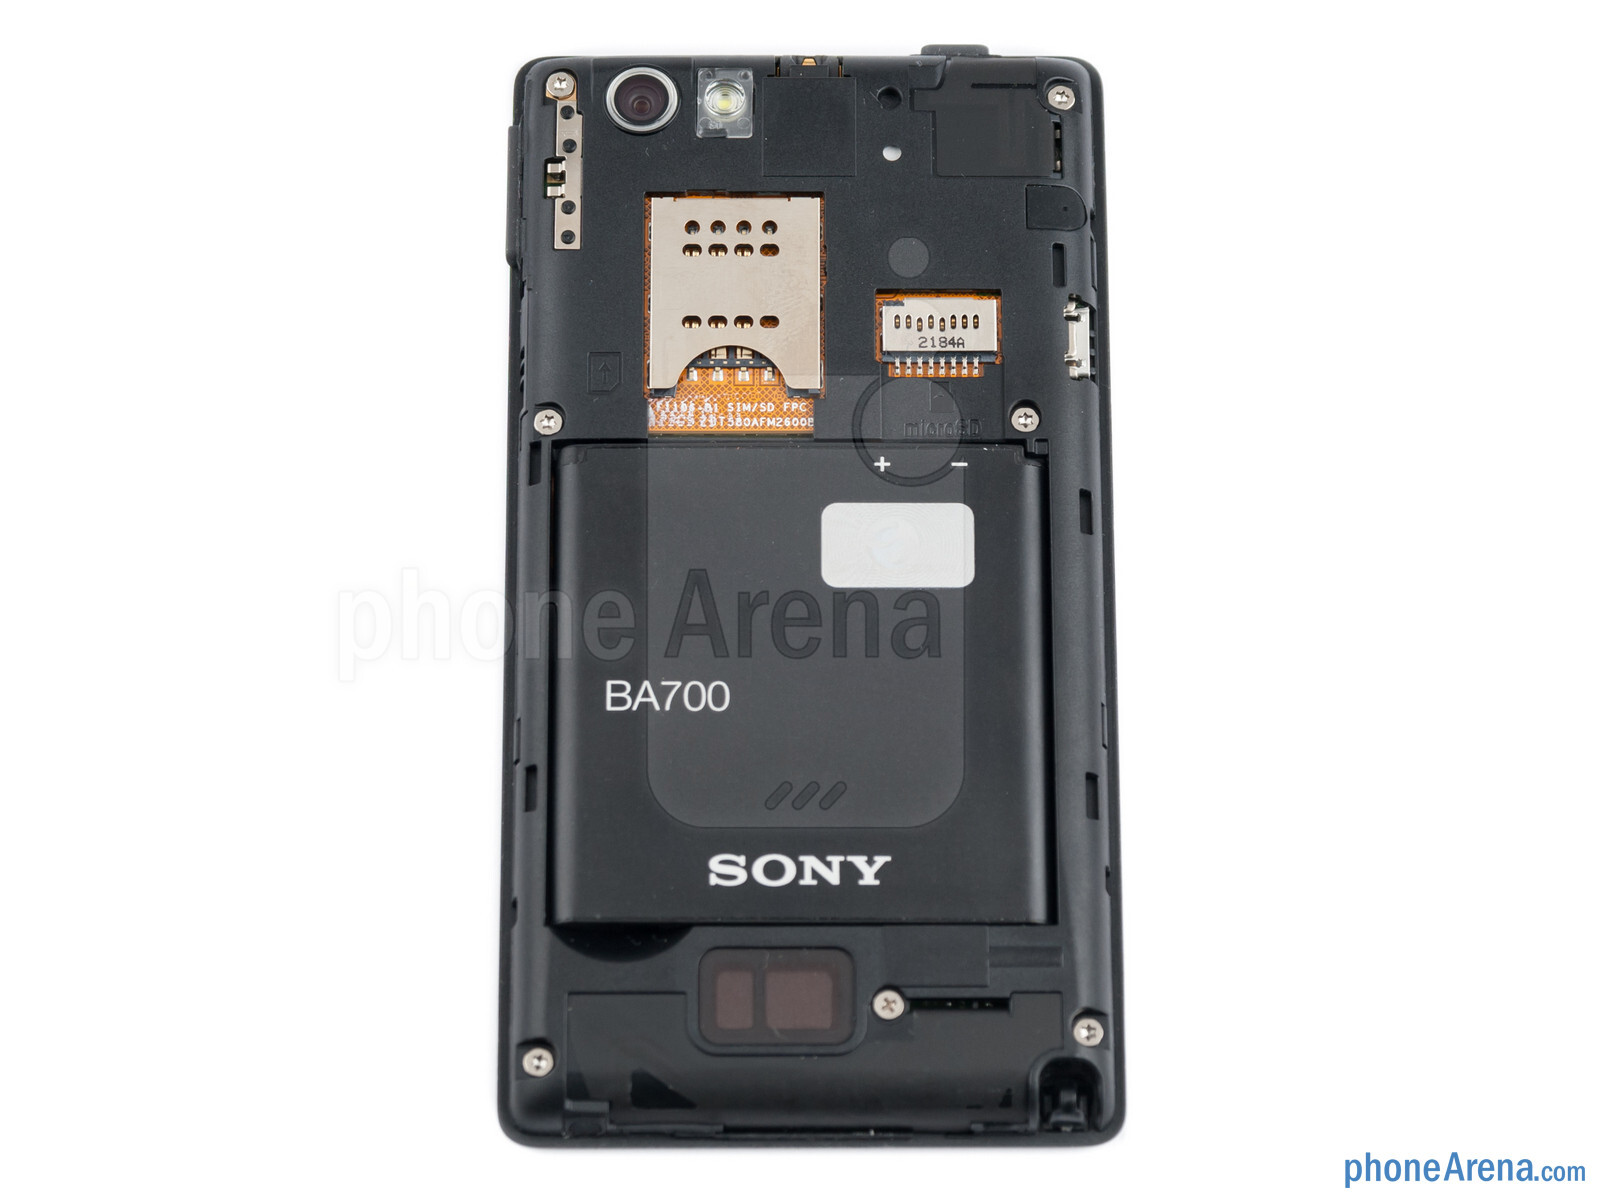 Sony Xperia Miro Review St23i 4 Gb Battery Compartment